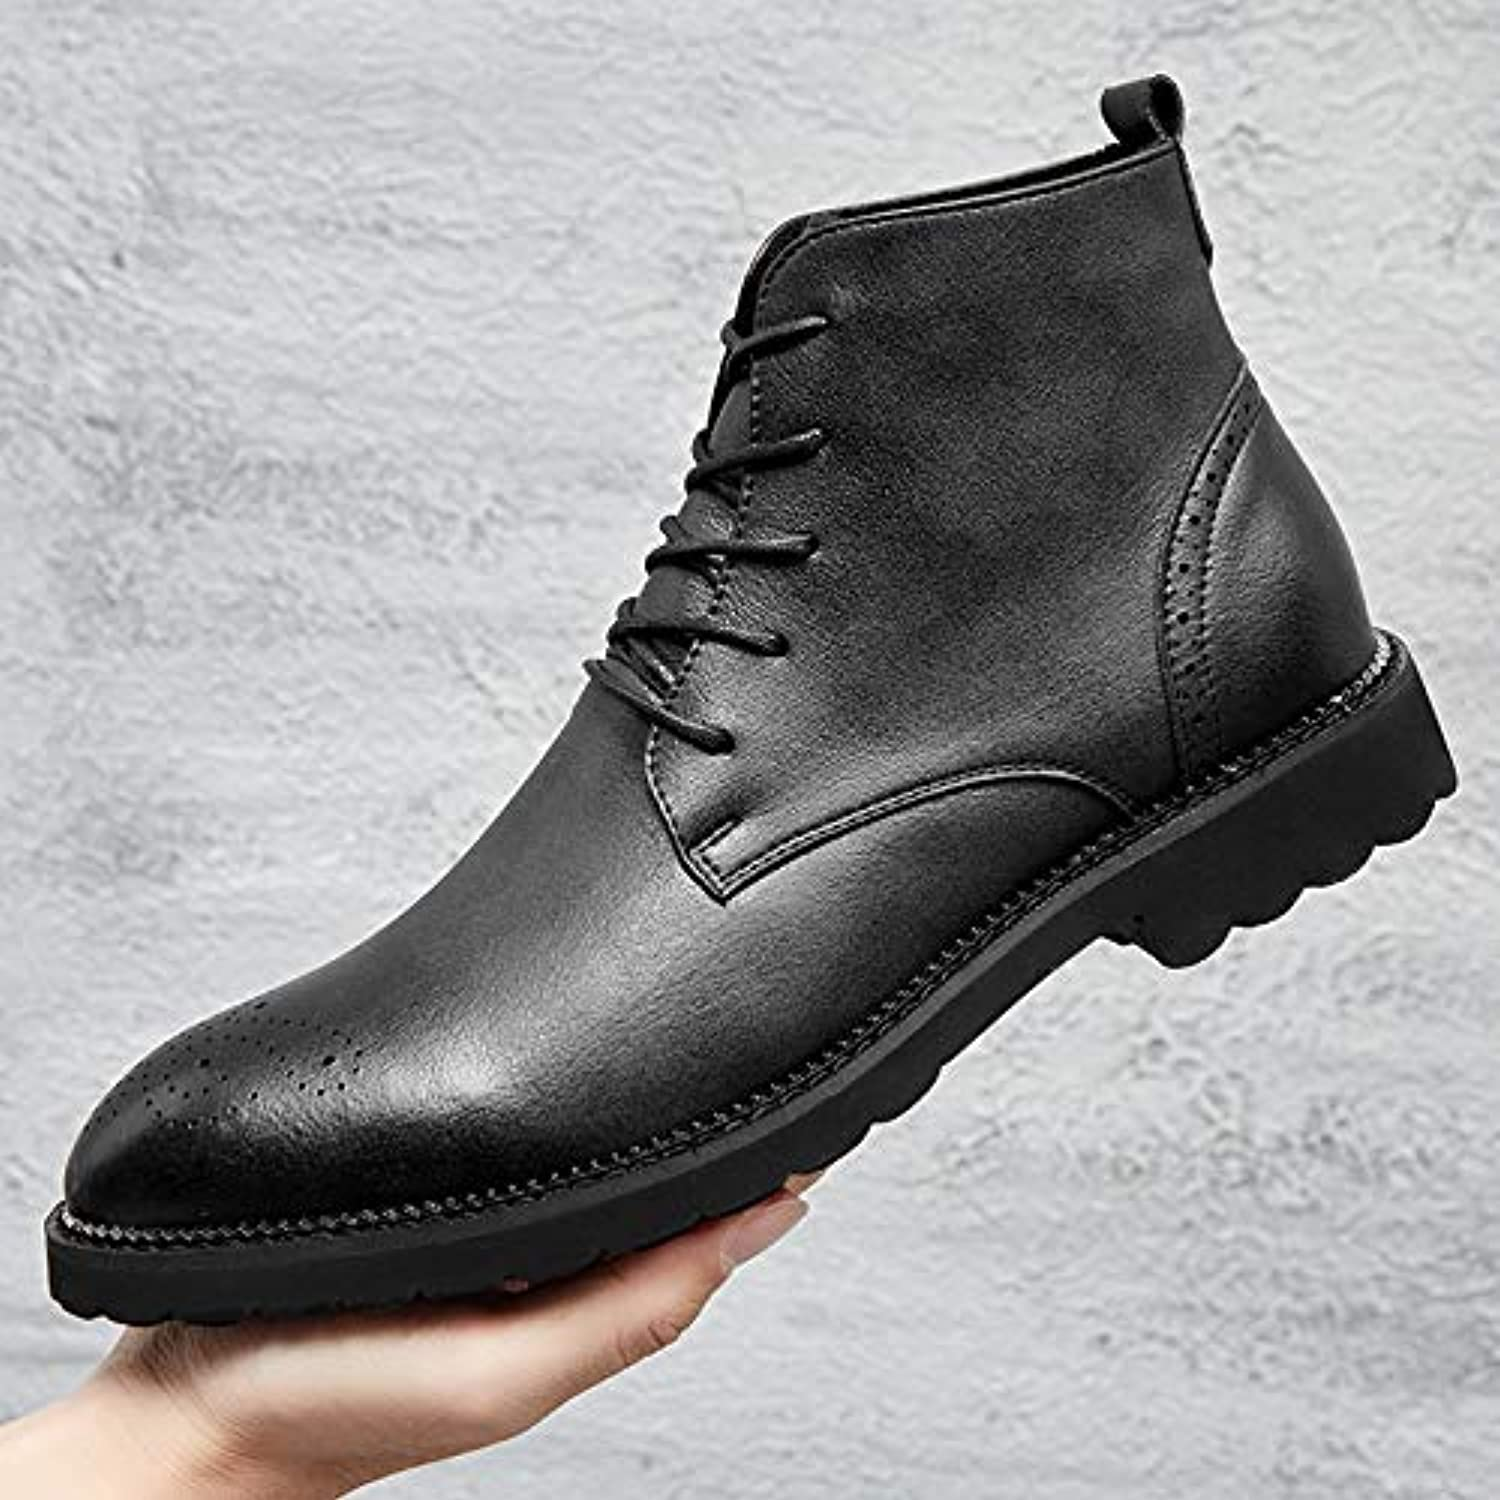 LOVDRAM Men'S shoes Autumn High shoes Men'S Short Boots With Increased Leather Boots Pu Martin Boots Men'S Boots